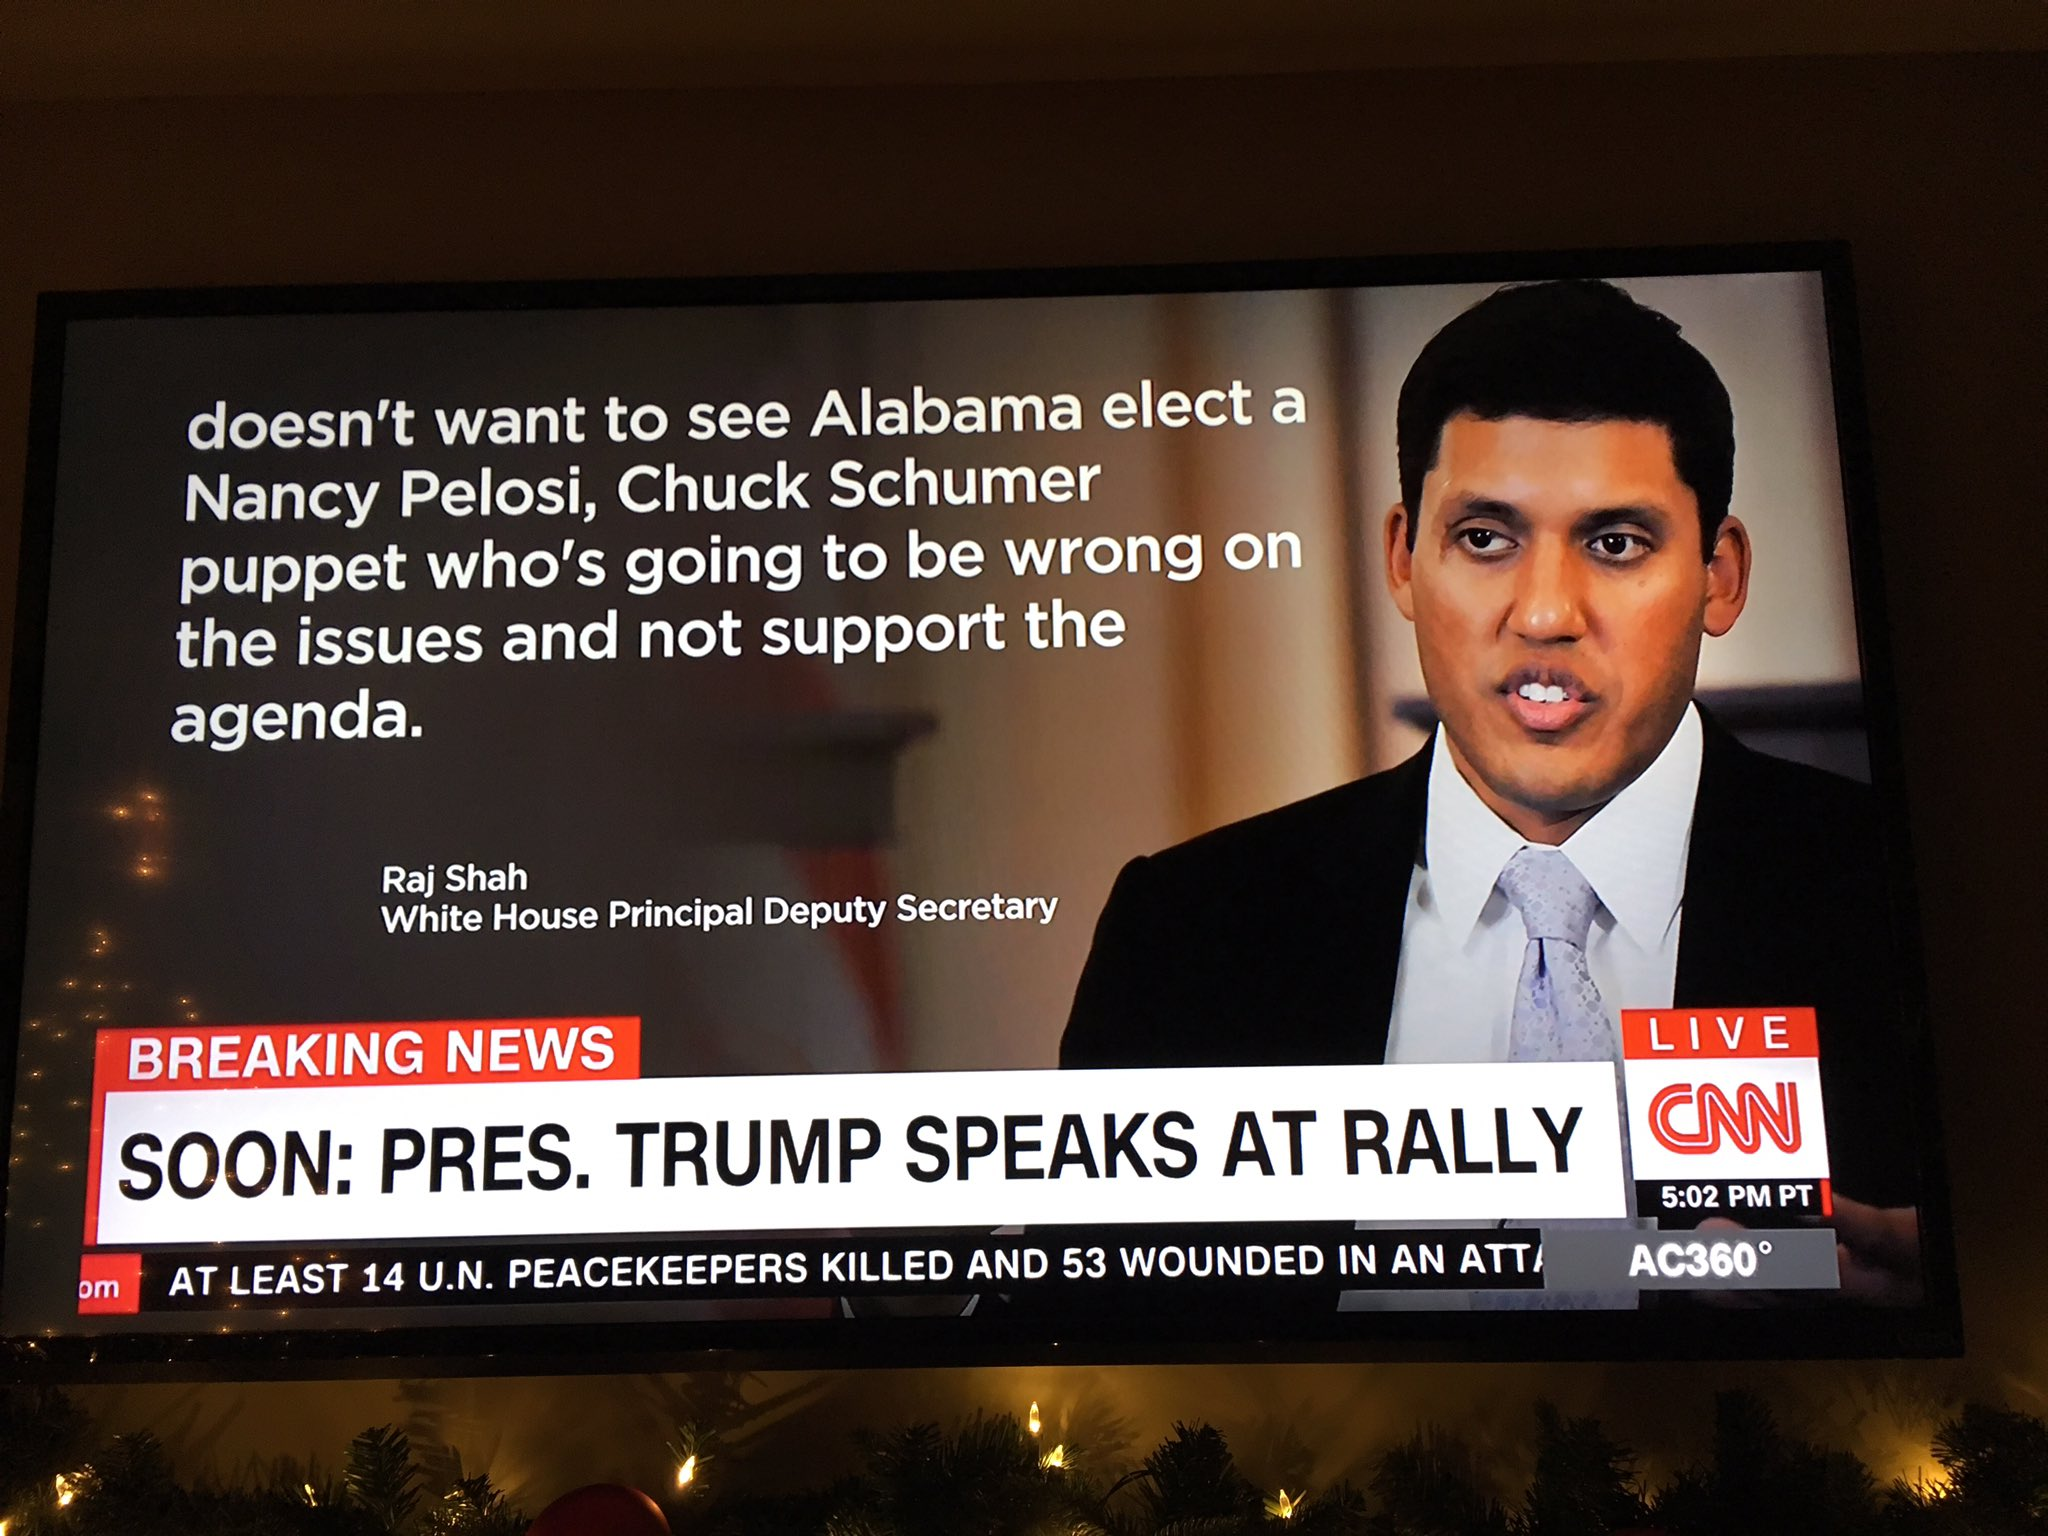 .@CNN this is definitely not @RajShah45 but it is #FakeNews https://t.co/tS9QBndBw0